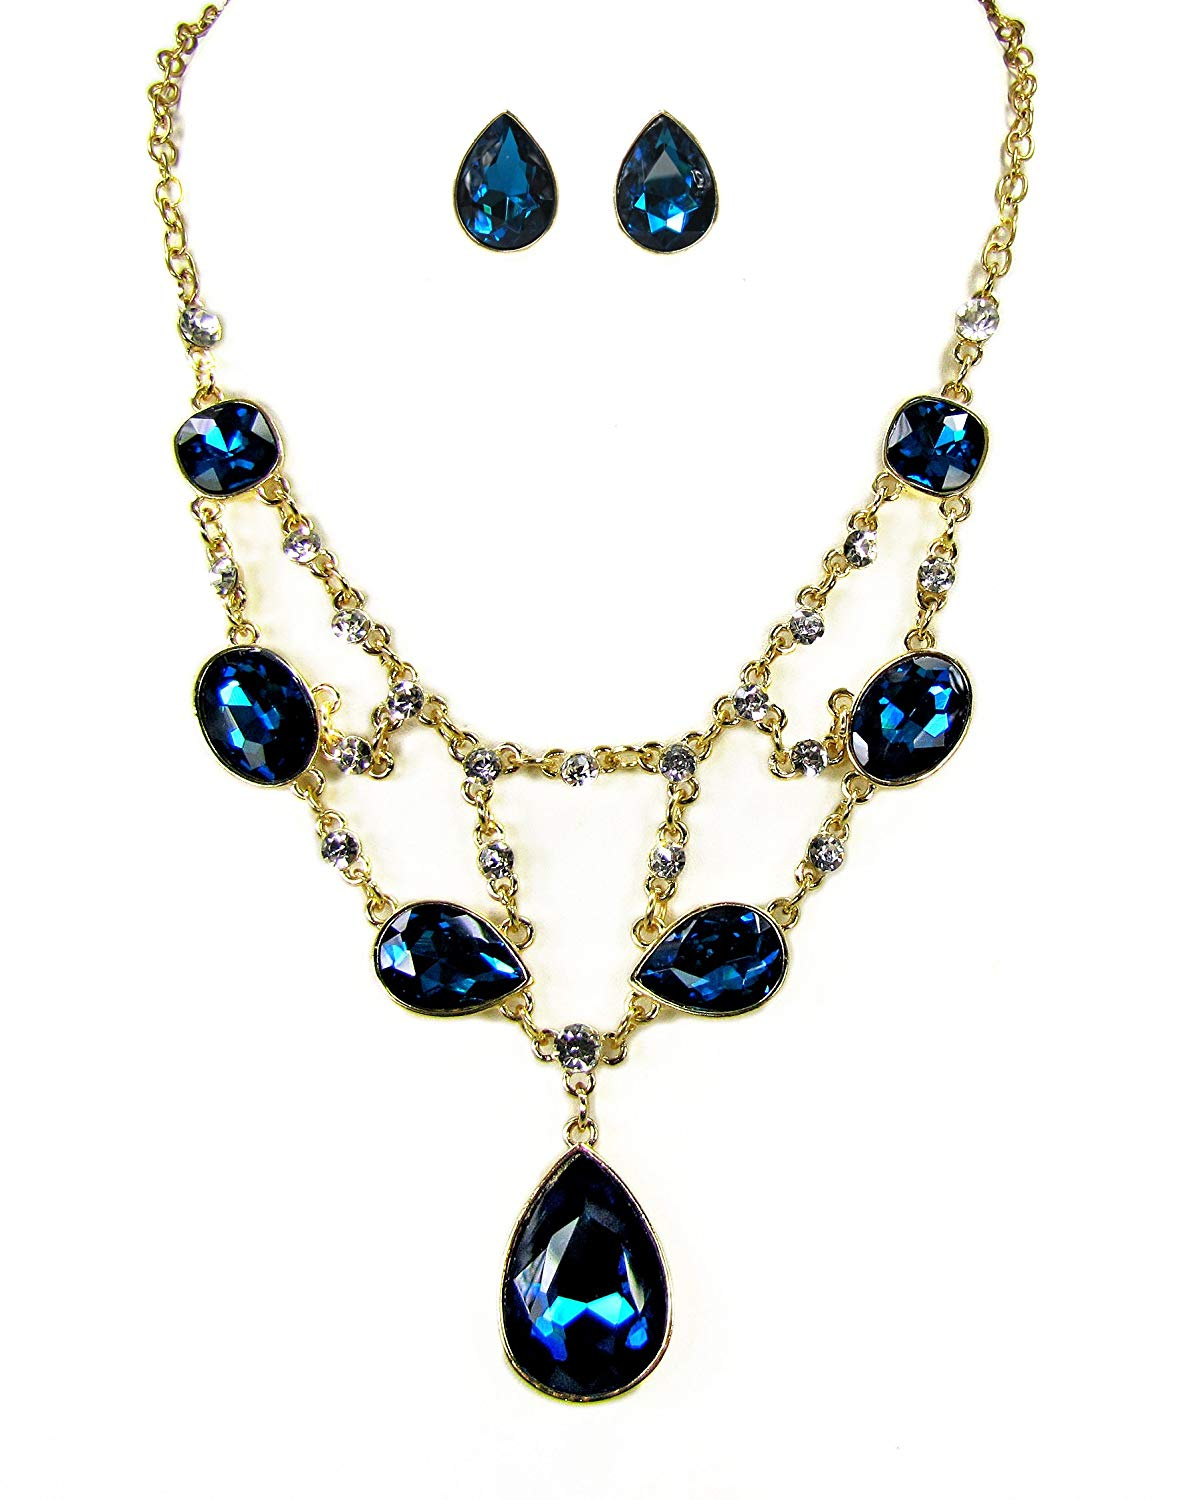 Crystal Bib Statement Necklace and Earring Set in Teal Blue